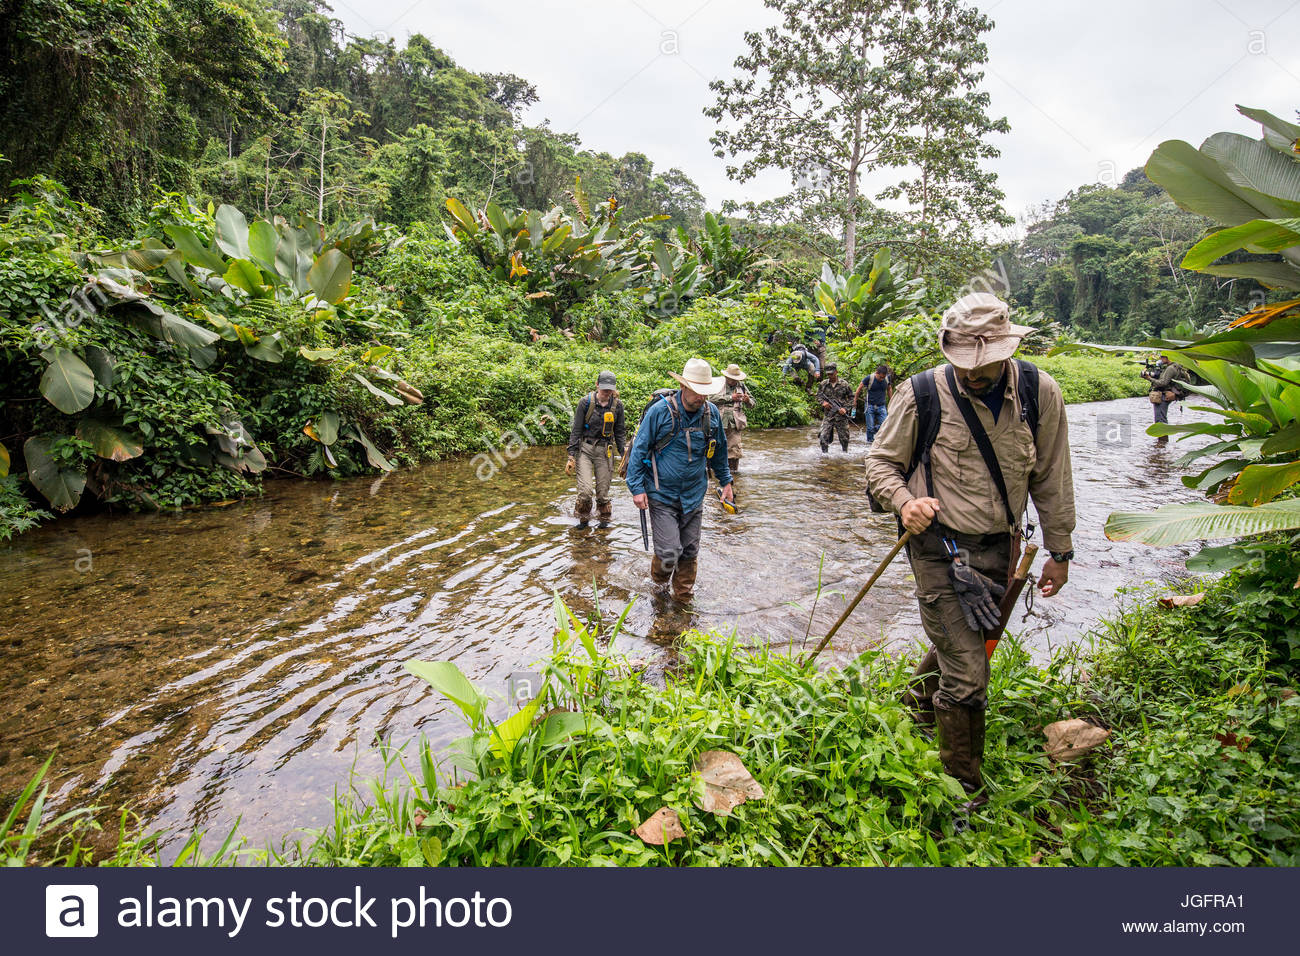 Members of a scientific team return to camp after a day exploring the ruins of a pre-Colombian city in the Mosquitia - Stock Image